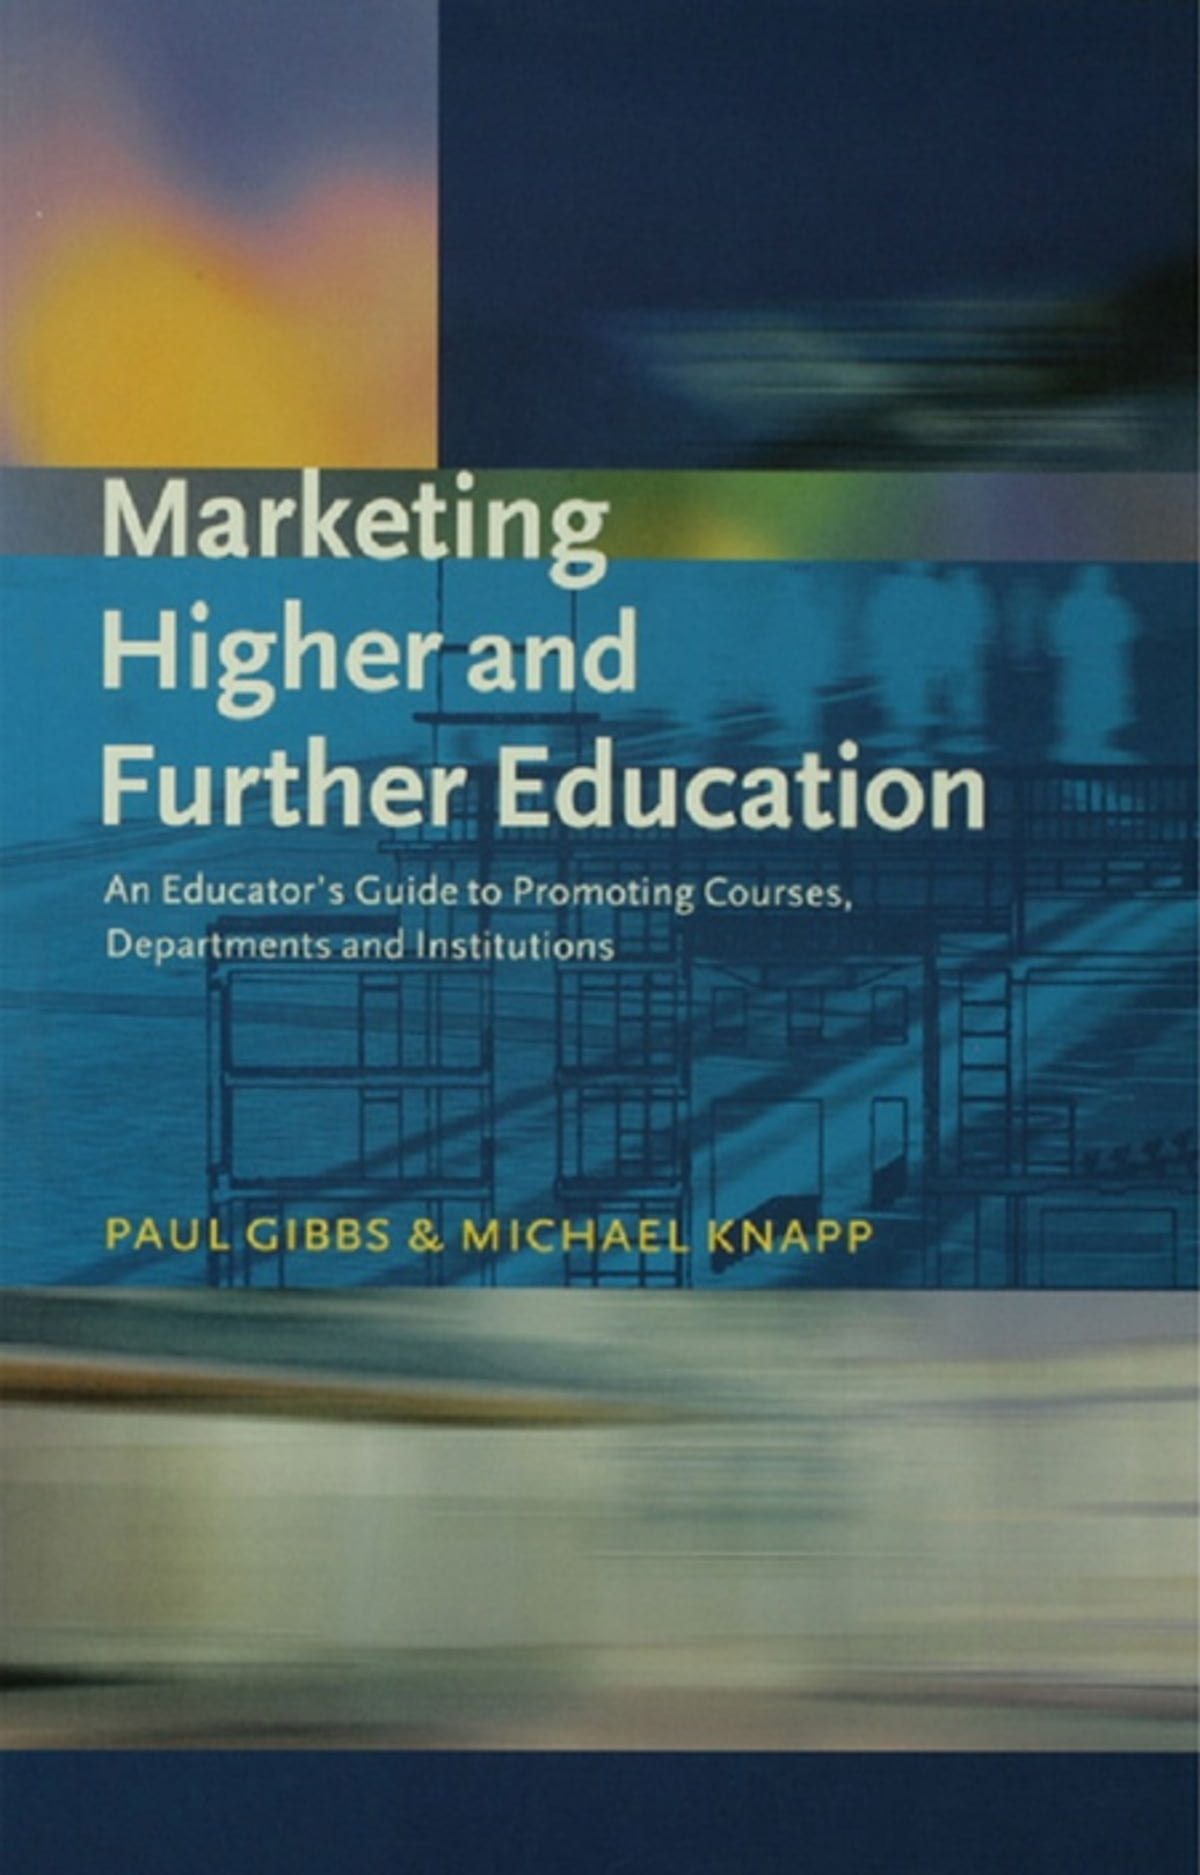 Marketing Higher and Further Education eBook by Gibbs, Paul - 9781136609404  | Rakuten Kobo